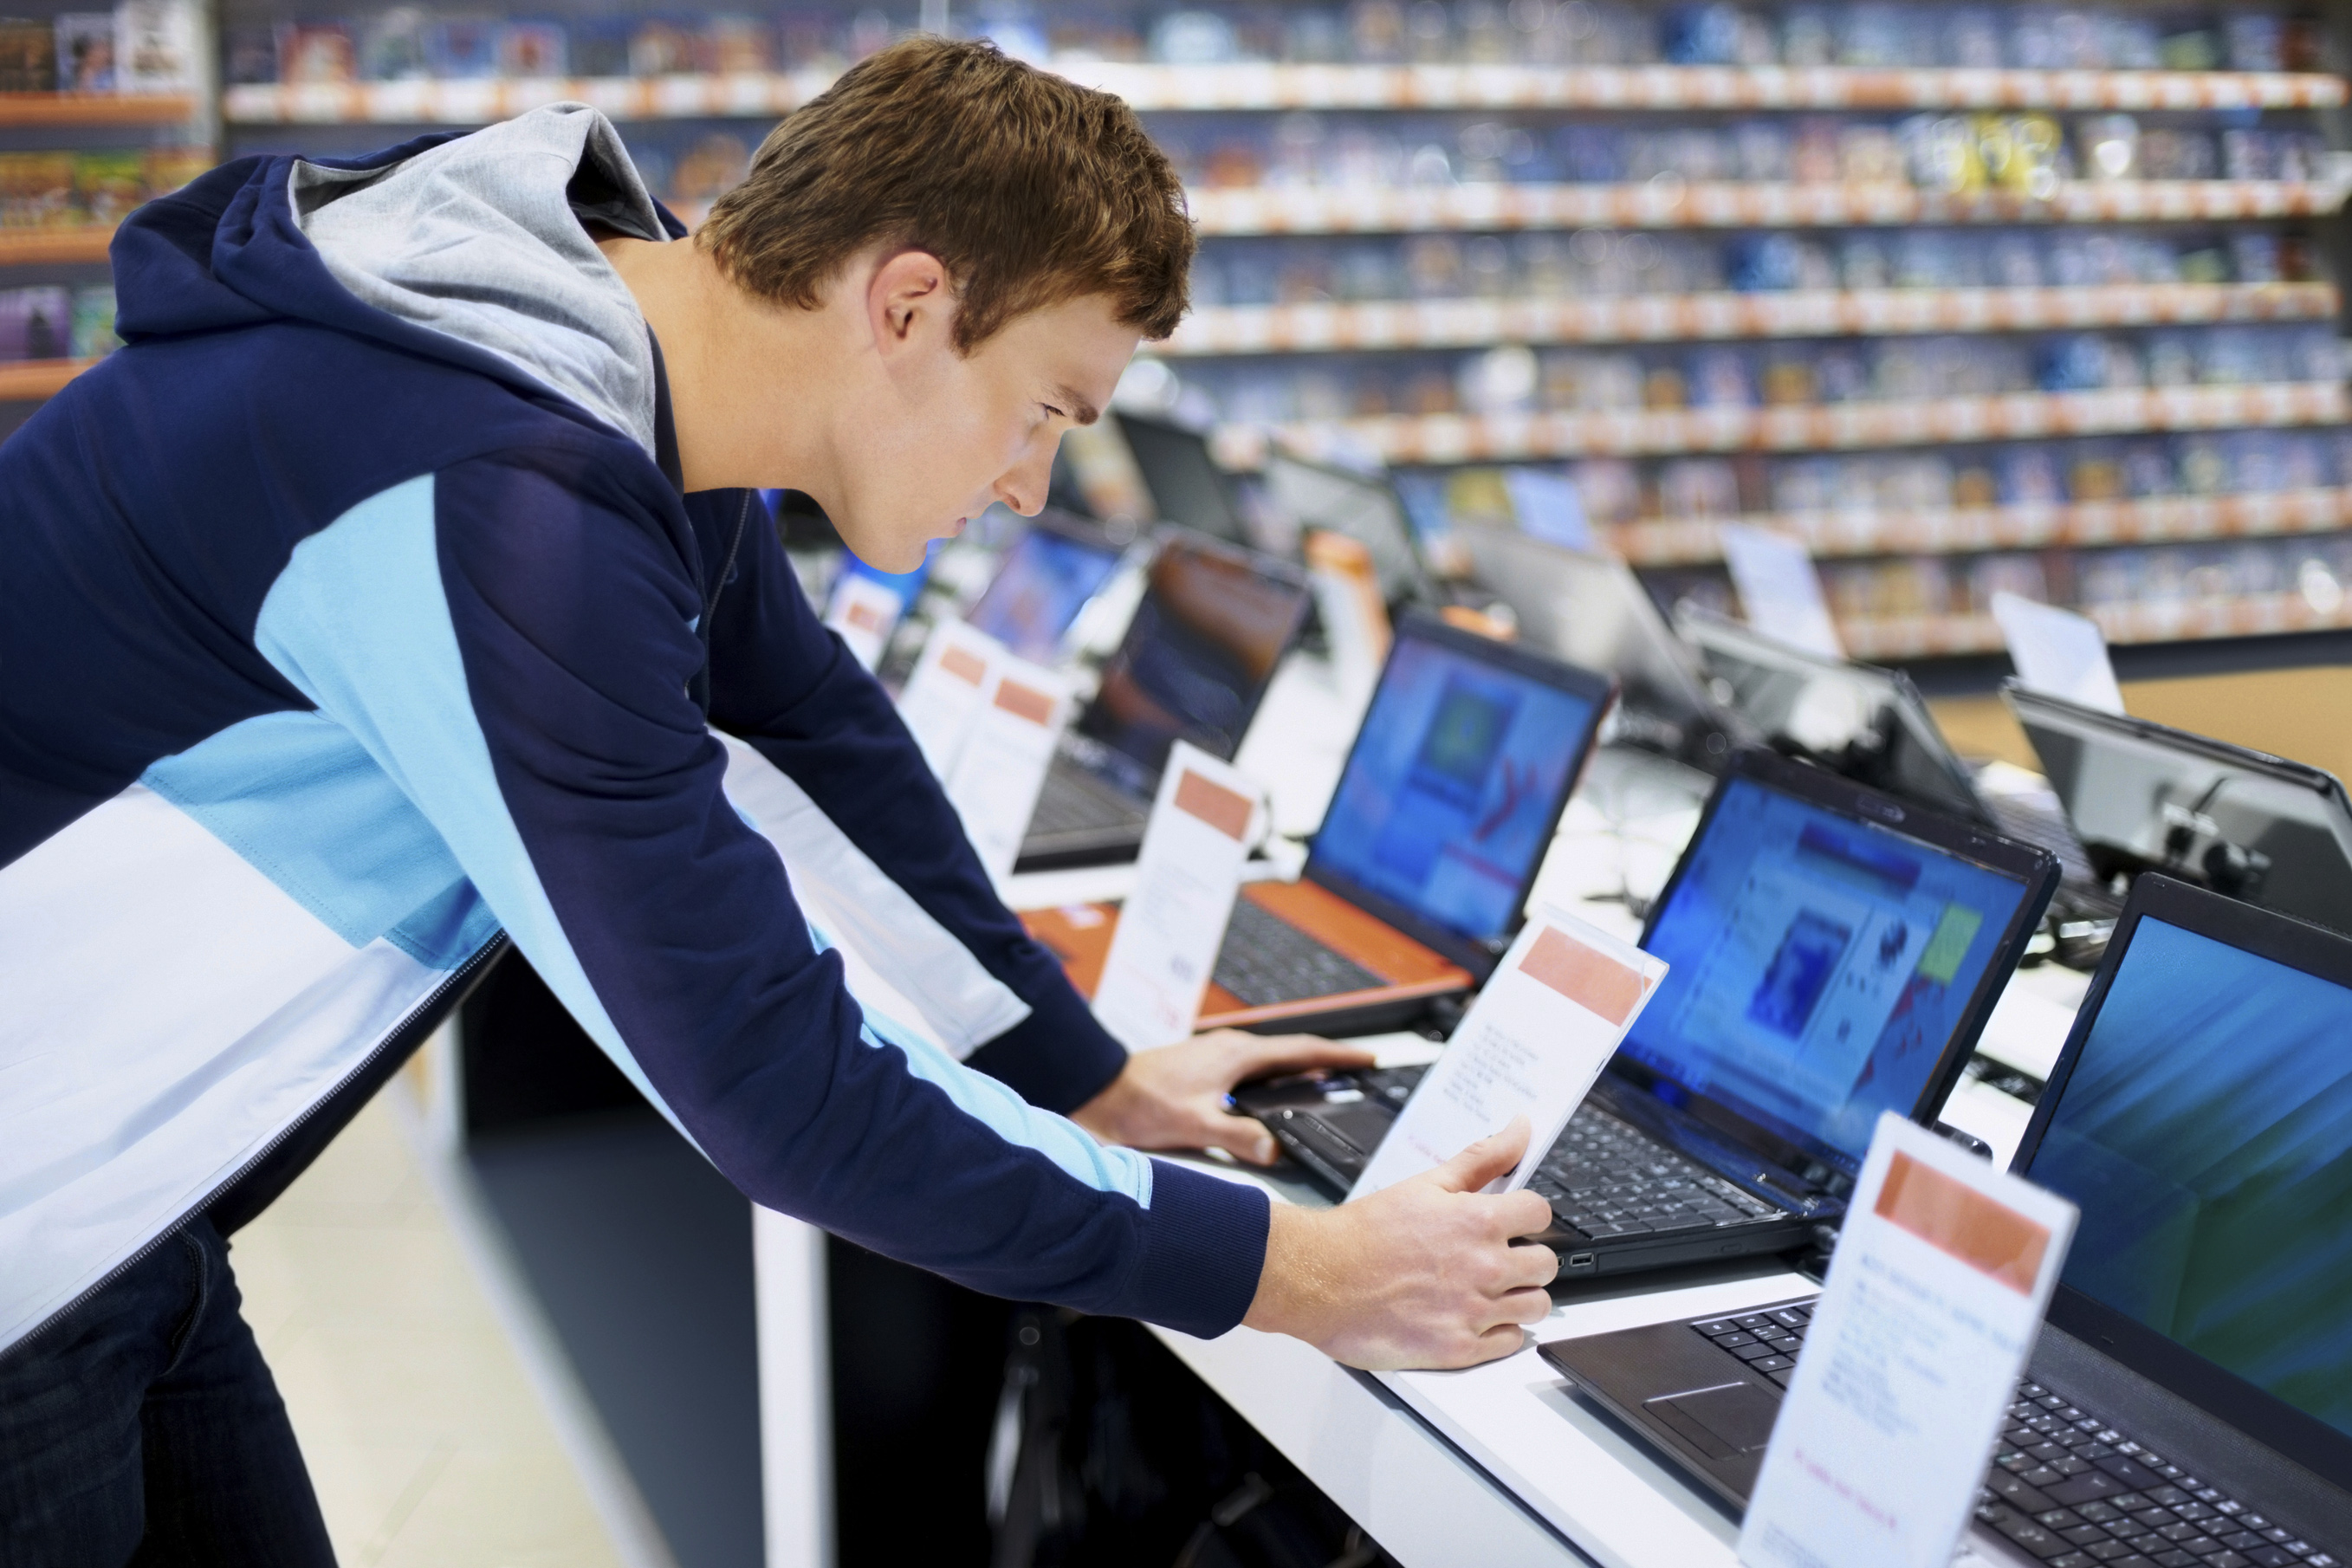 laptop shopping